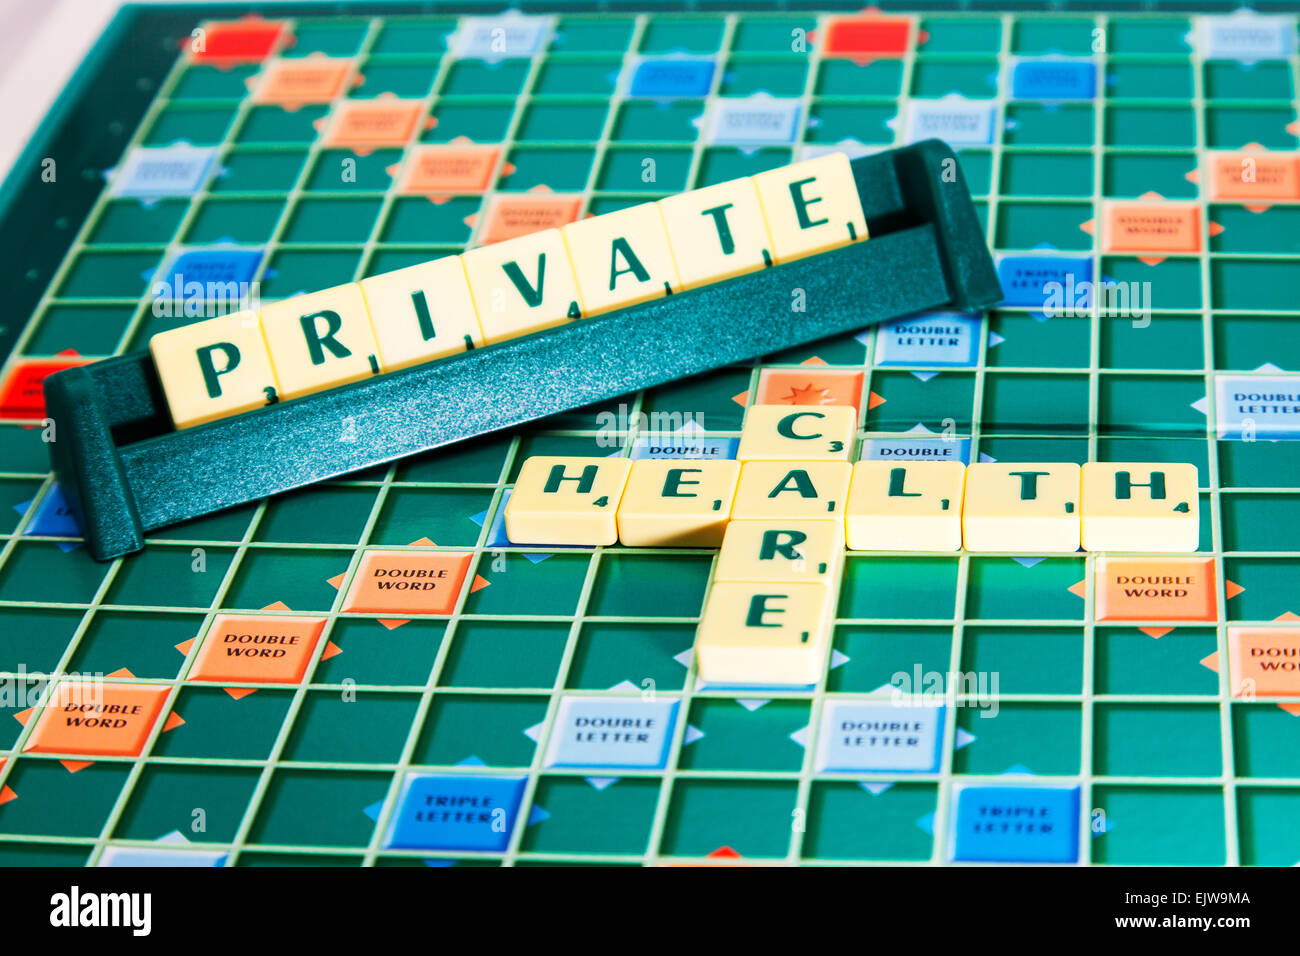 Private health care medical bmi bupa insurance words using scrabble tiles to spell out - Stock Image